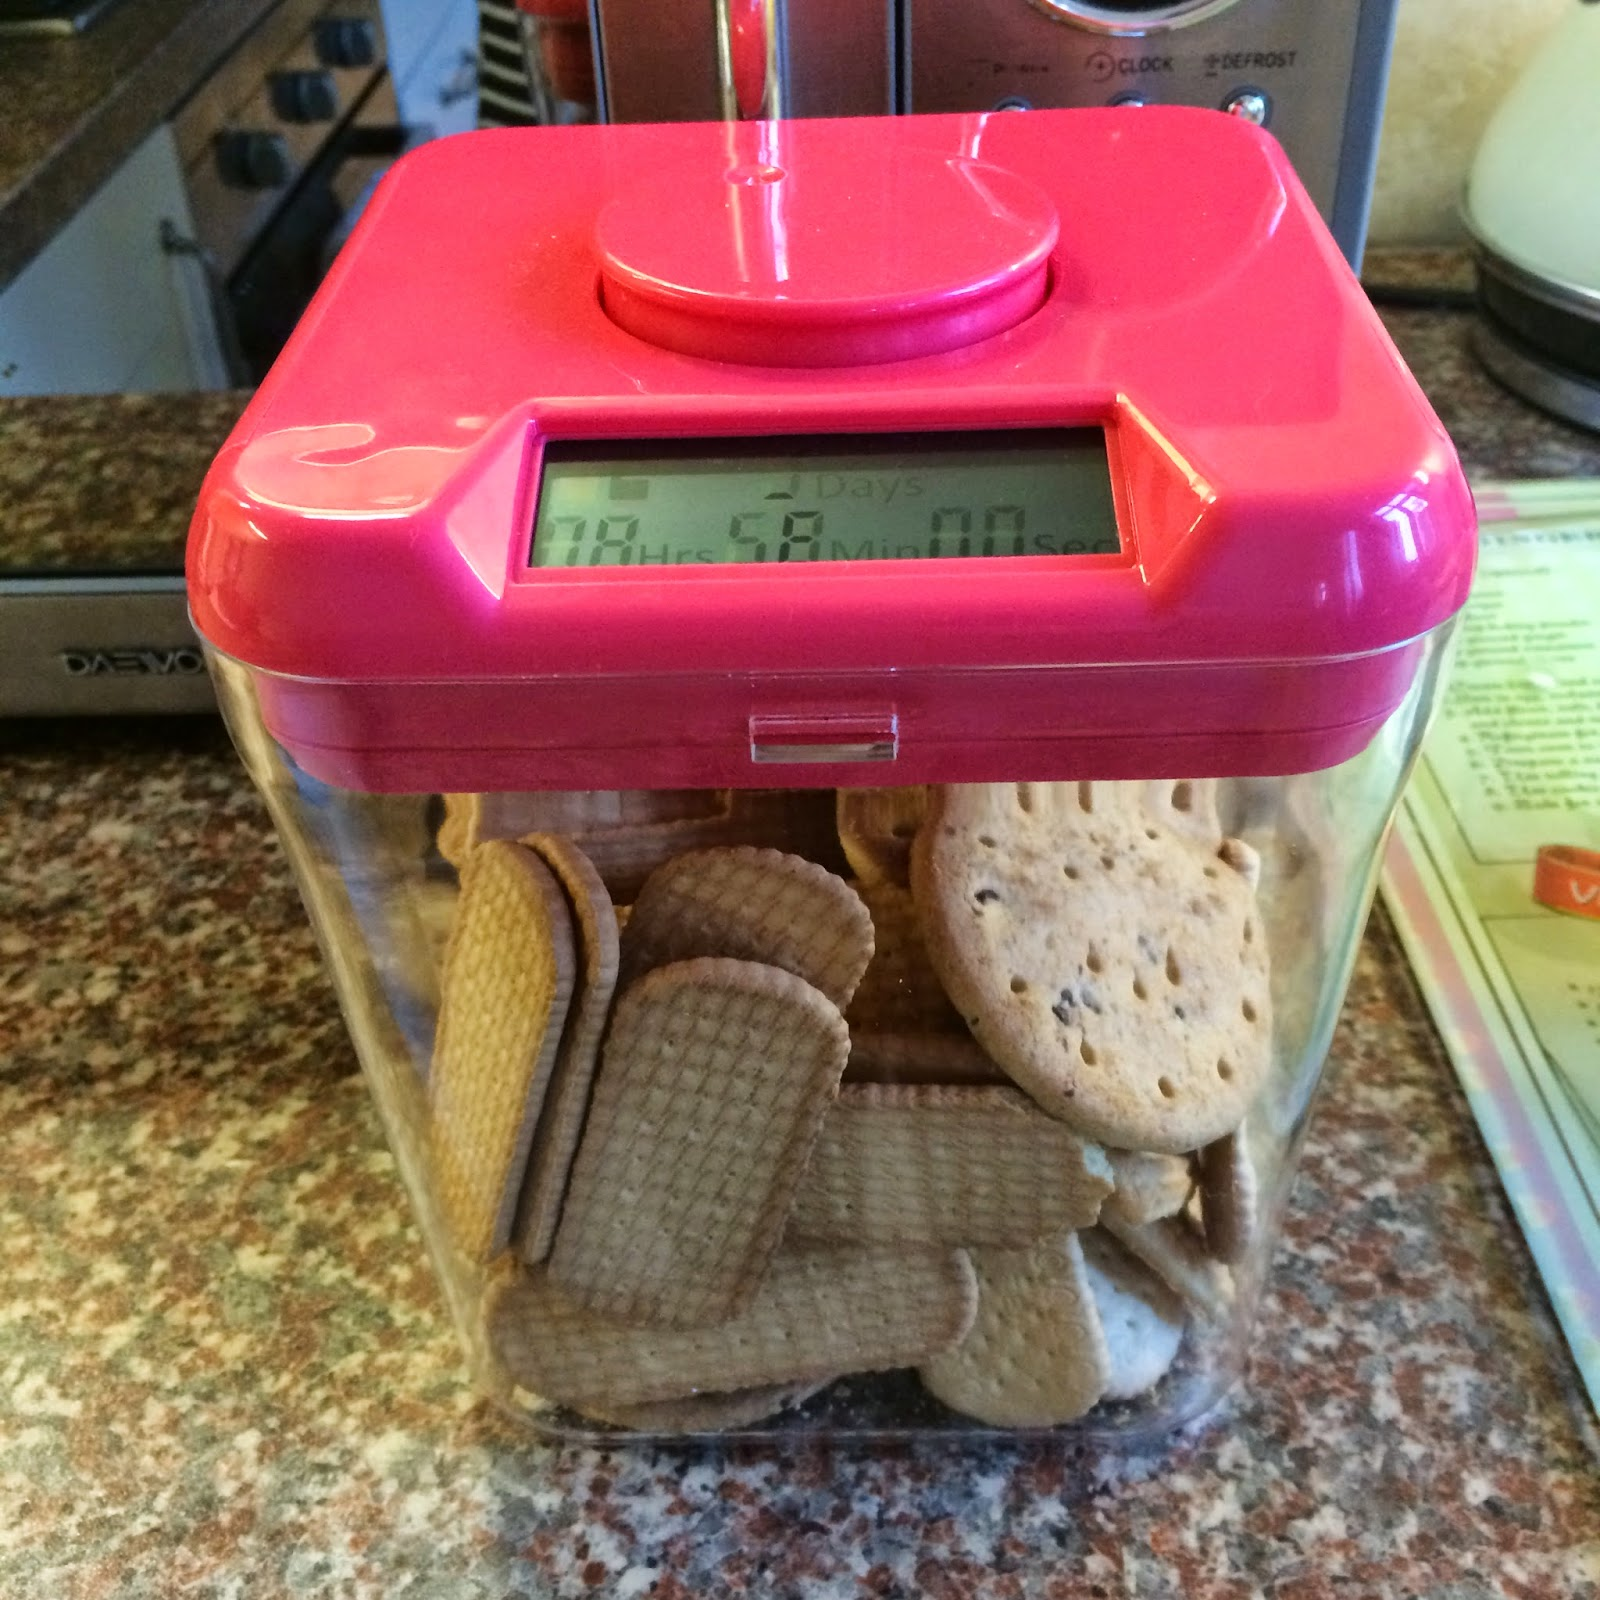 Mrs Bishop's Bakes and Banter: Weight Loss Update and Kitchen Safe *REVIEW*